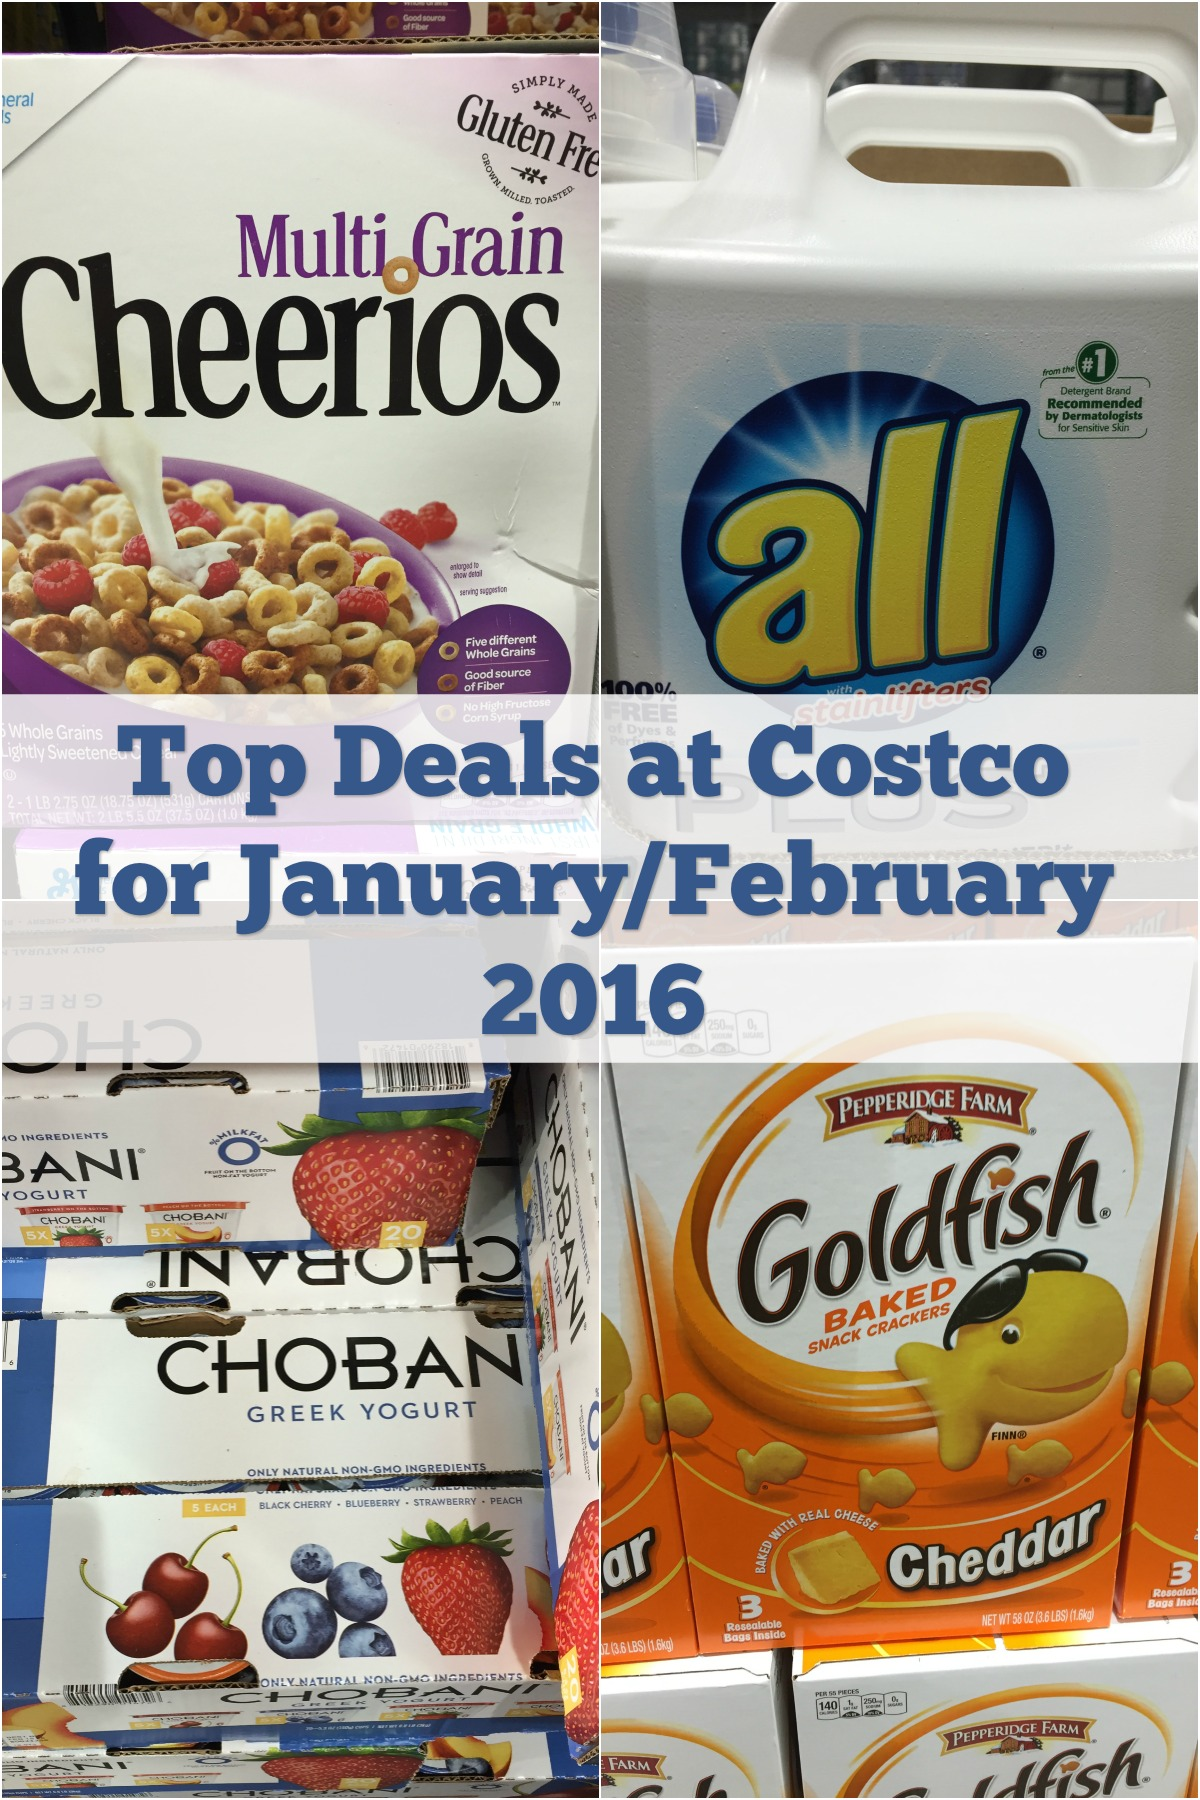 January and February Top Deals for Costco from 5DollarDinners.com